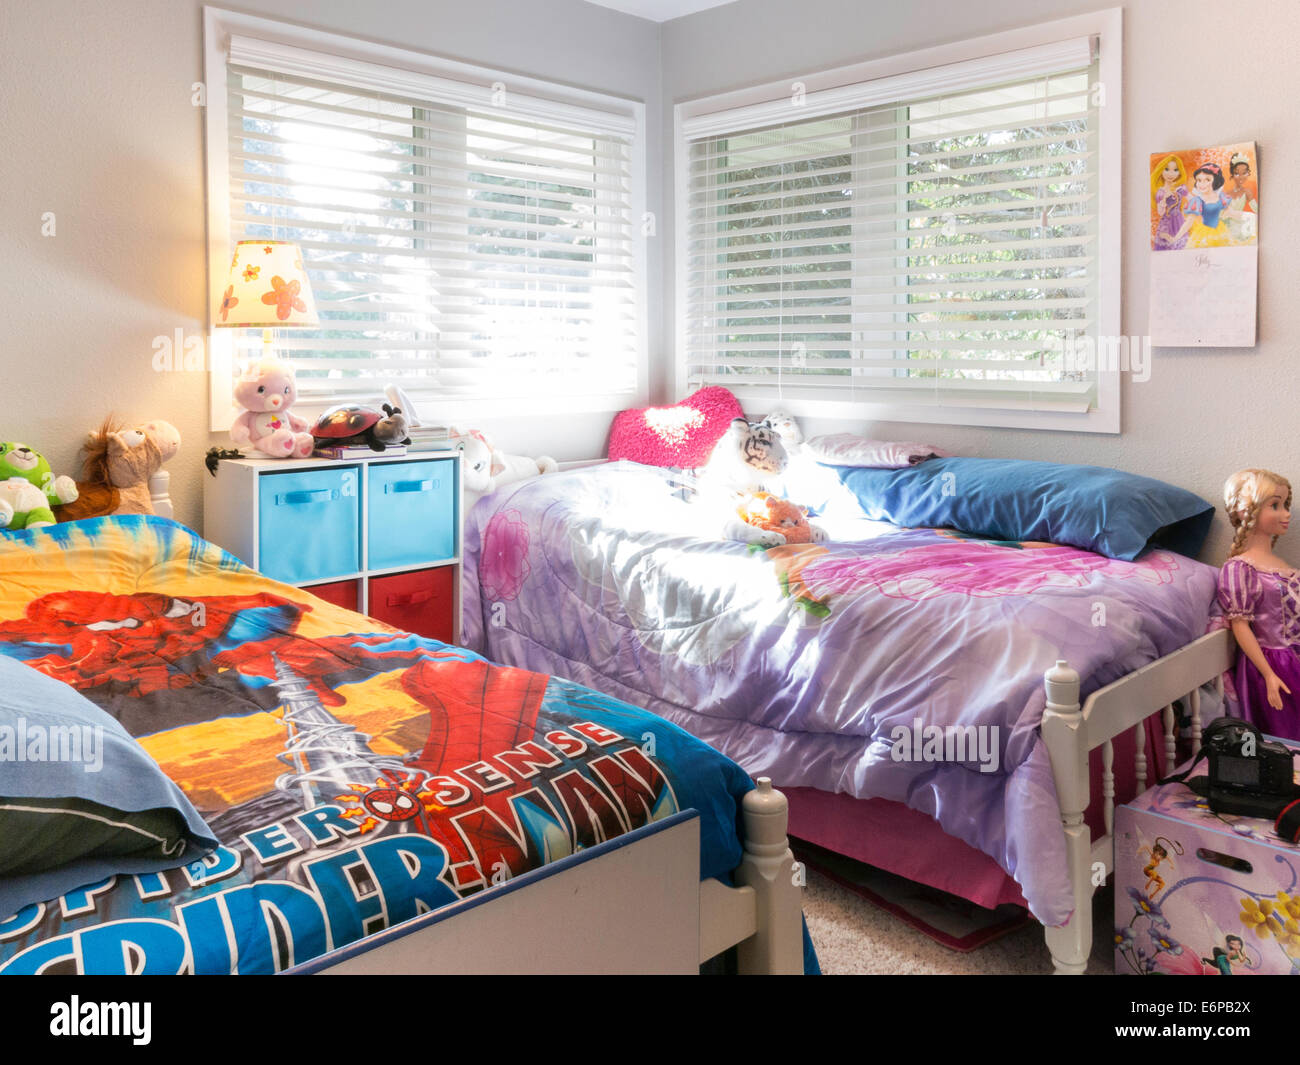 Brother and sister bedroom usa stock photo royalty free for Sibling bedroom ideas